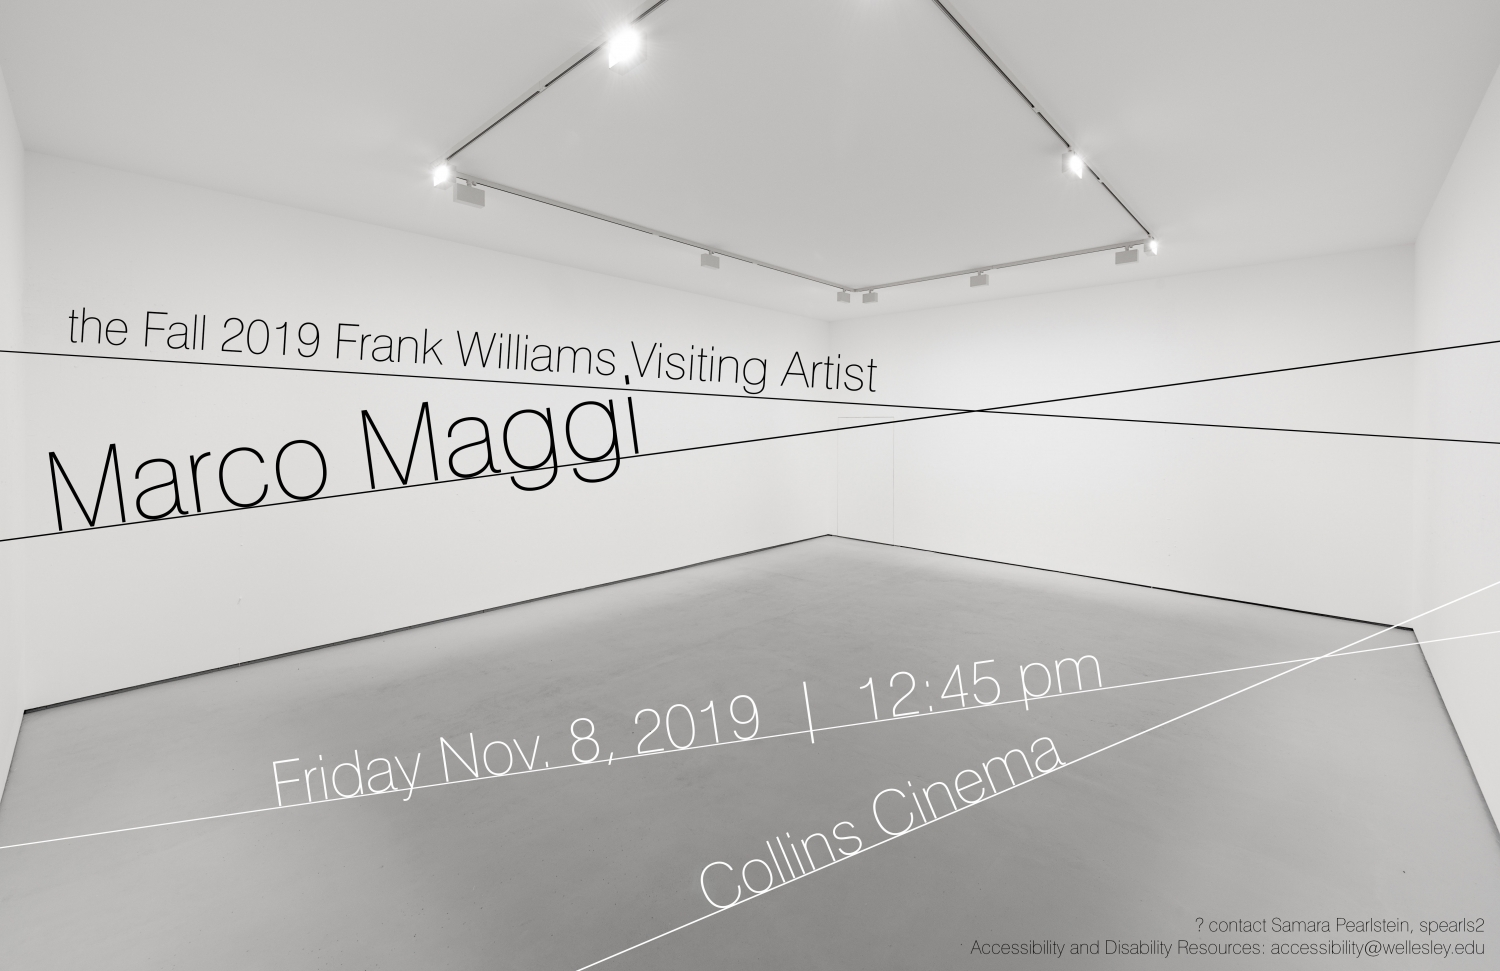 poster for Marco Maggi talk, empty-looking white box gallery space with text overlay